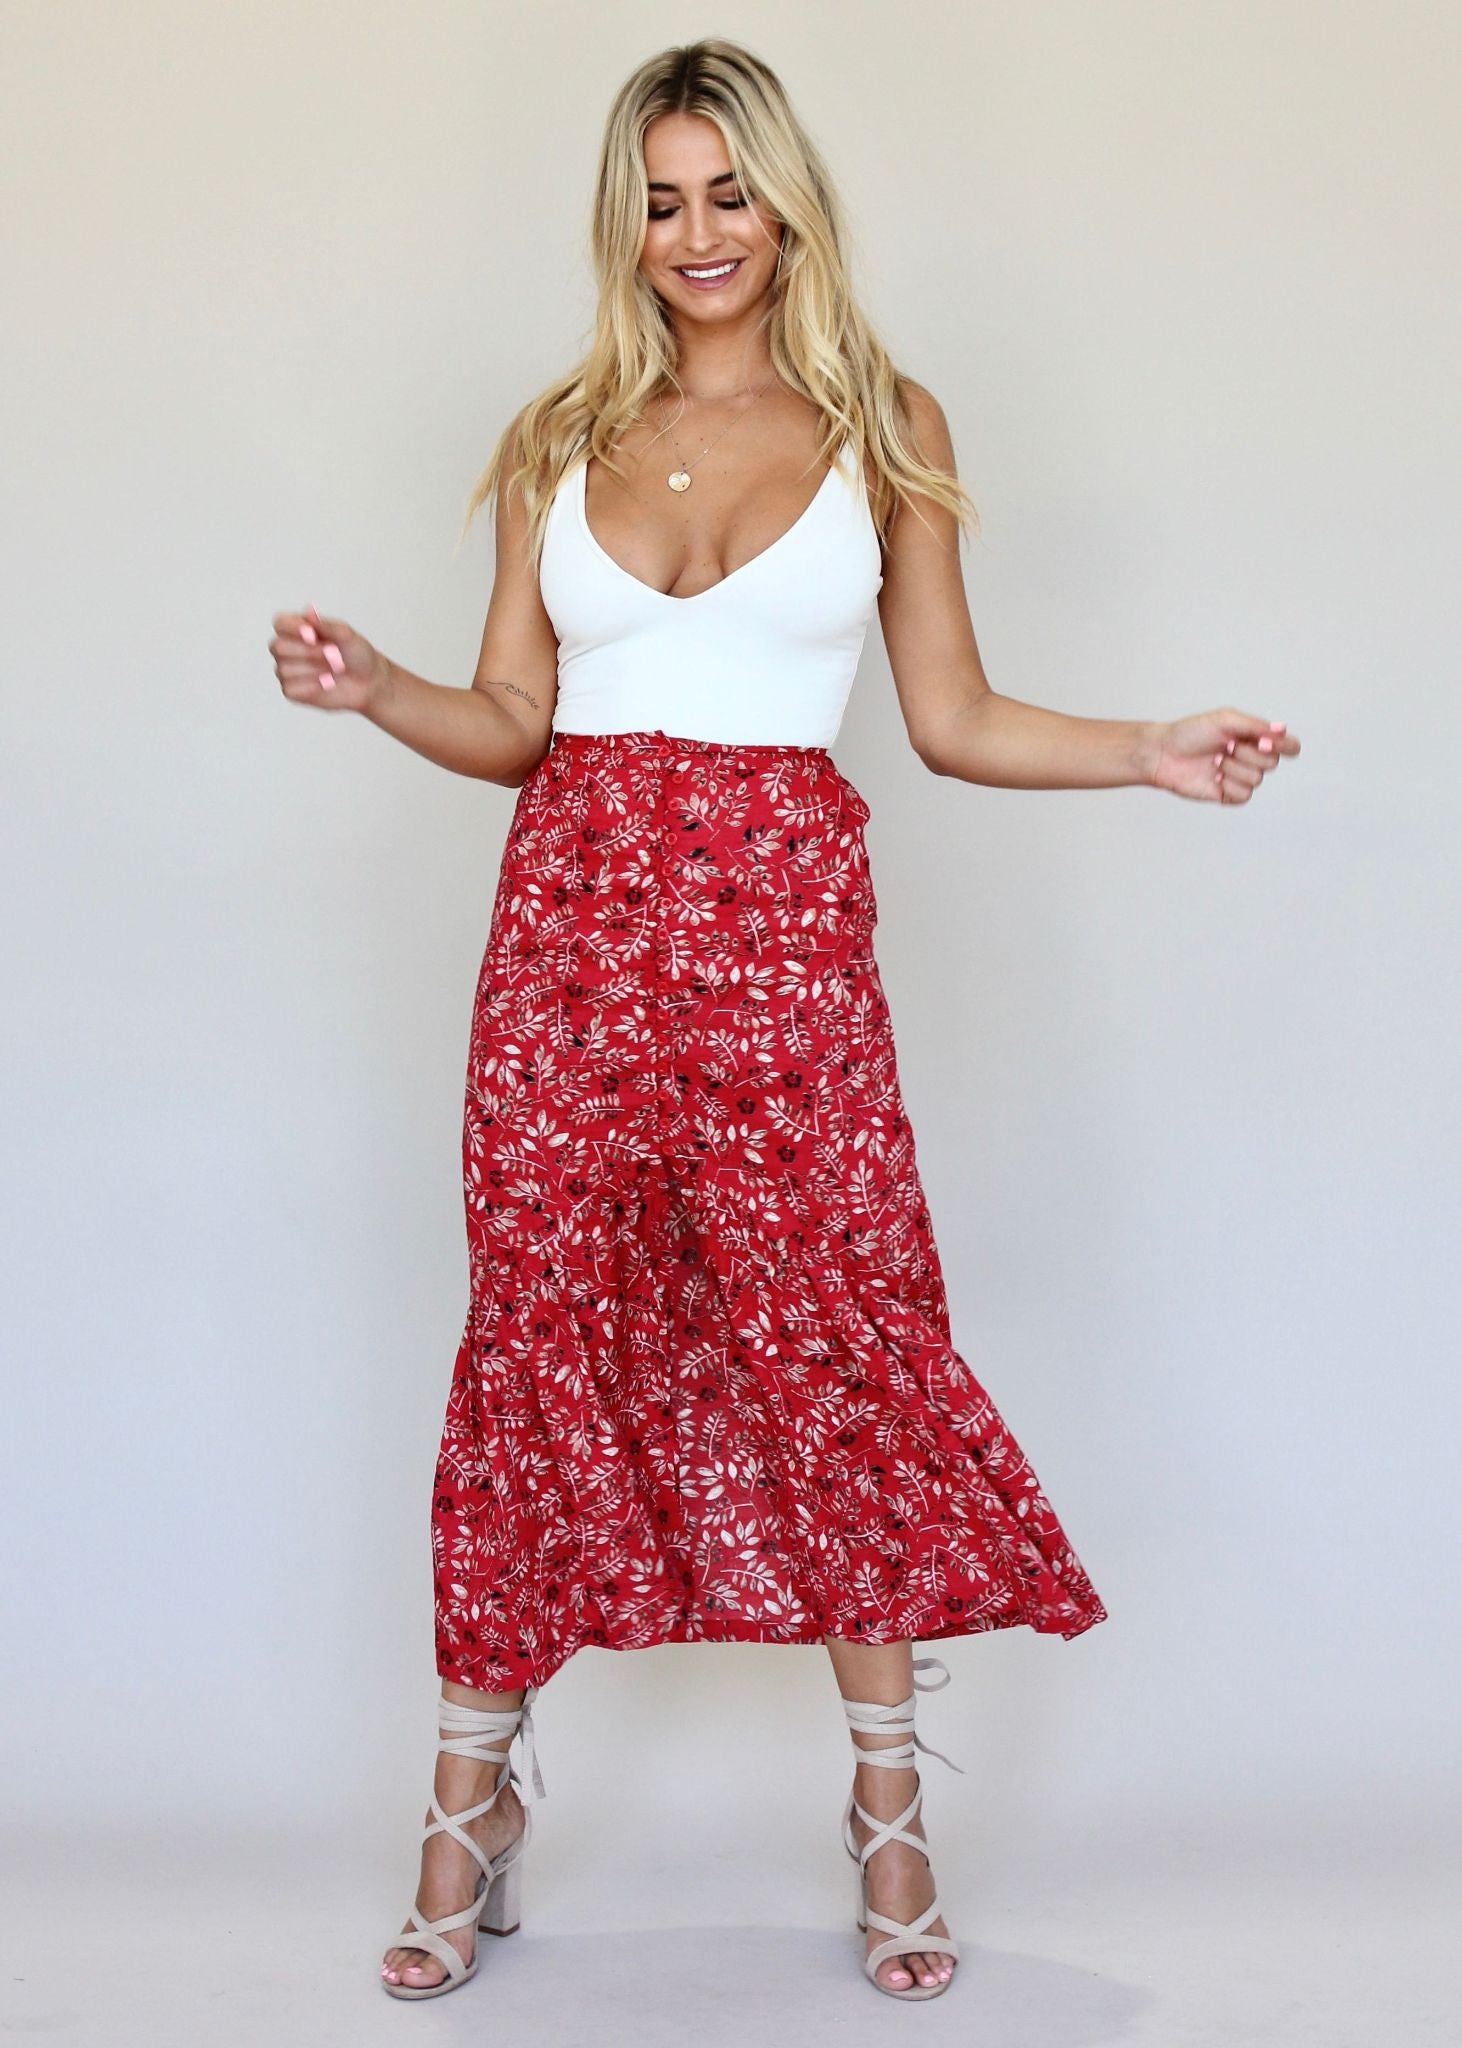 Found Simplicity Skirt - Red